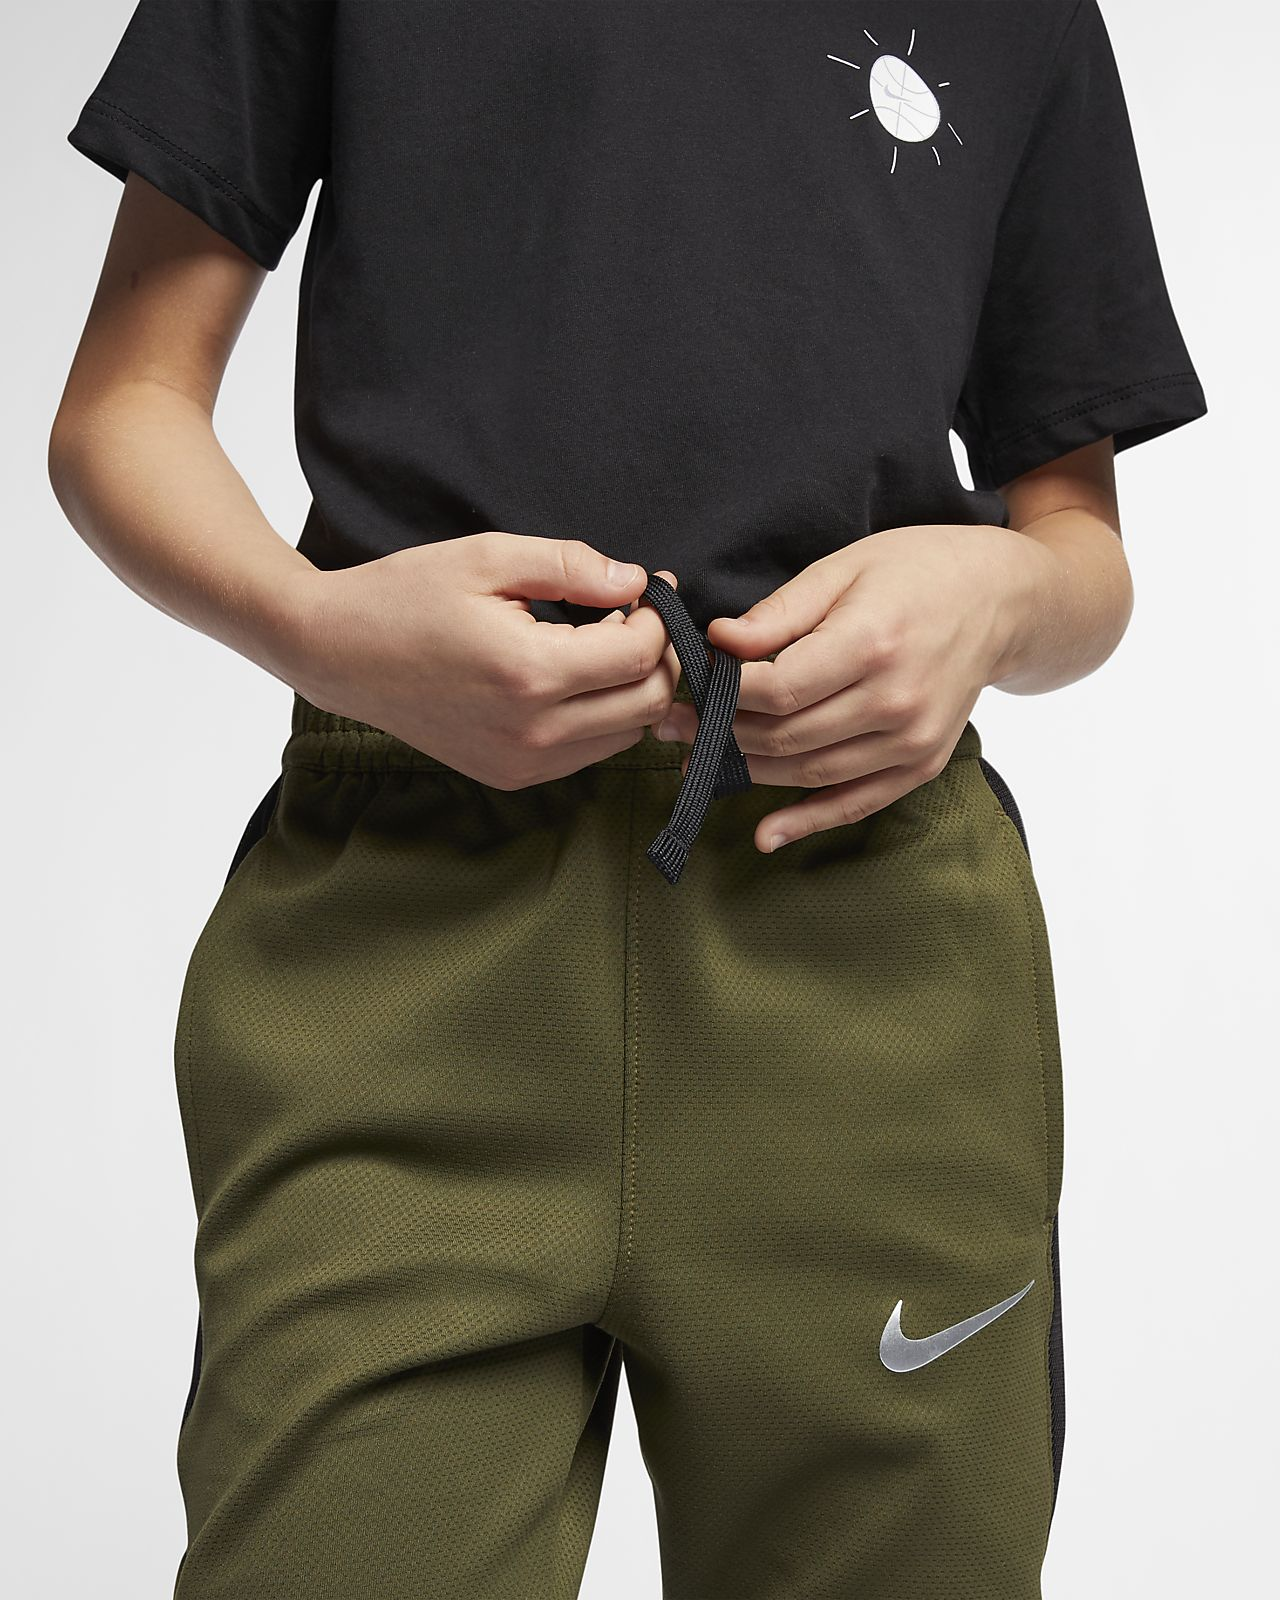 a980c6d1d ... Nike Dri-FIT Therma Flex Showtime Big Kids' (Boys') Basketball Pants